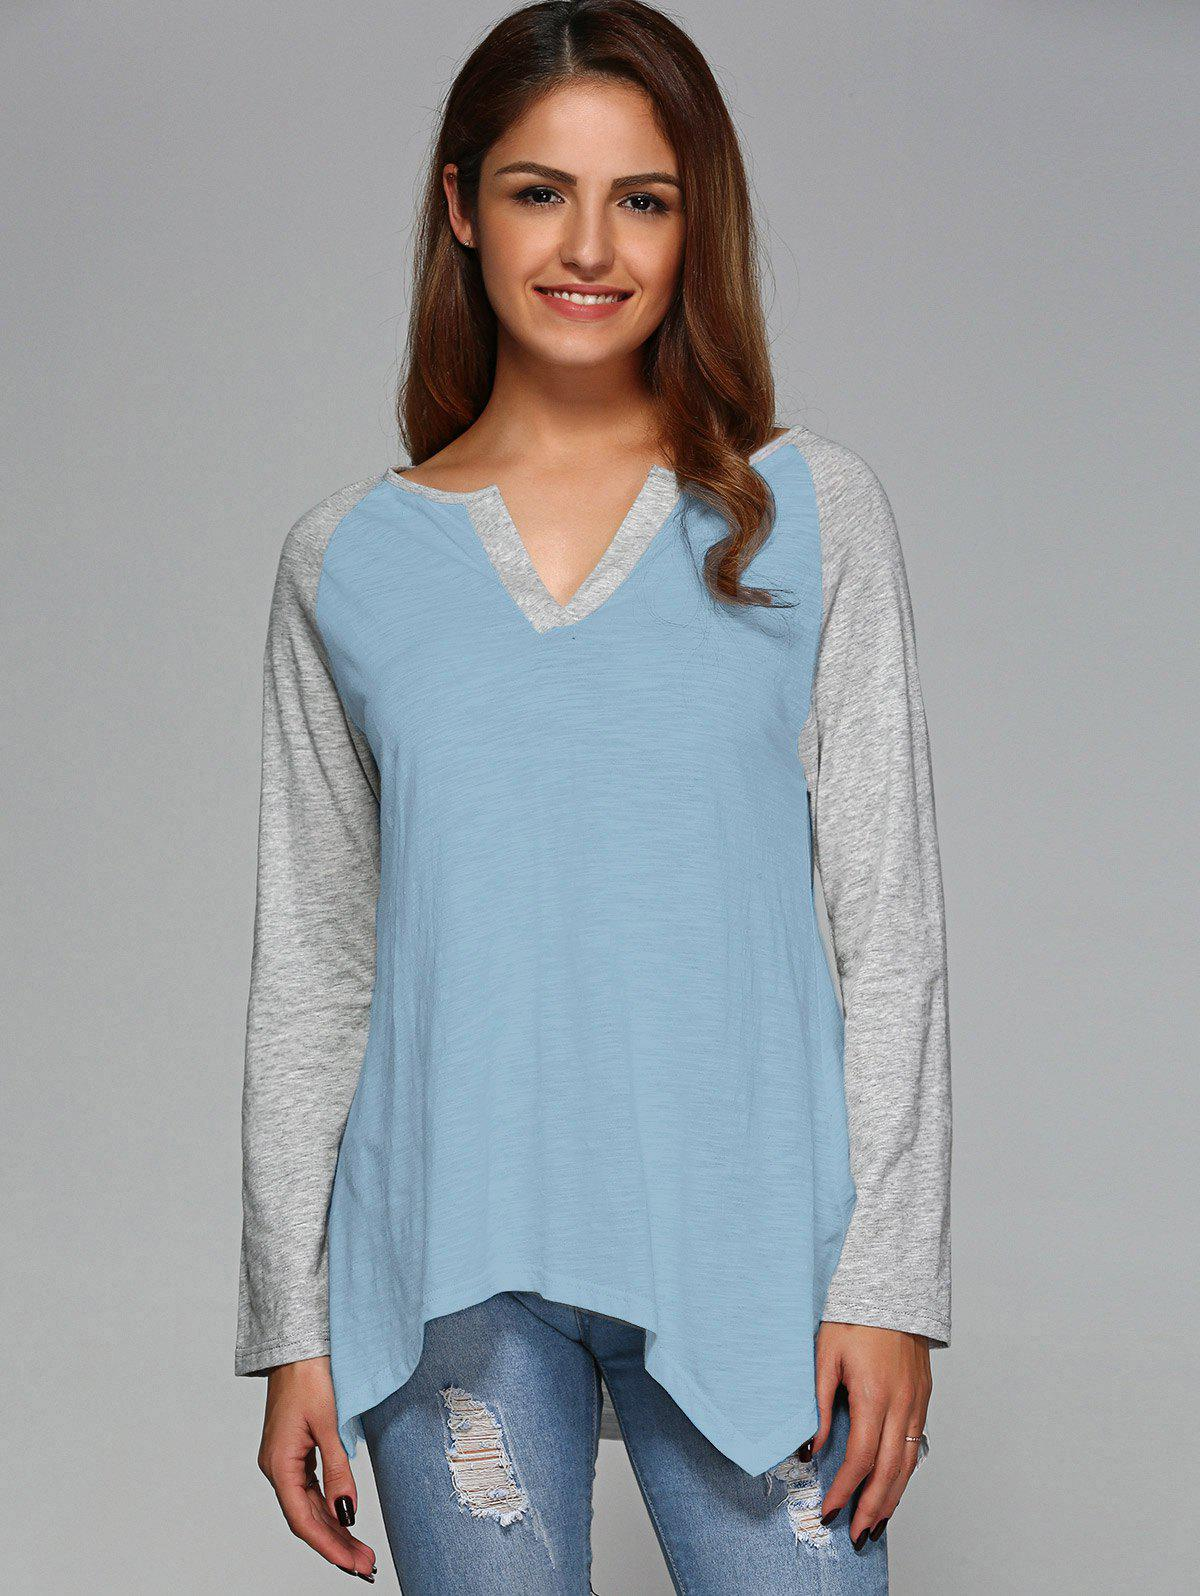 Raglan Sleeve Asymmetrical T-Shirt - LIGHT BLUE M